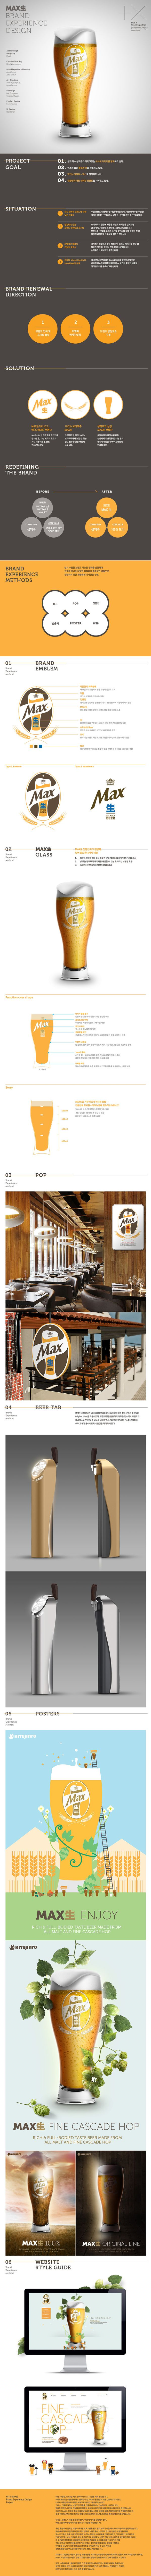 HITE MAX生 Brand Experience Design by Plus X , via Behance #branding